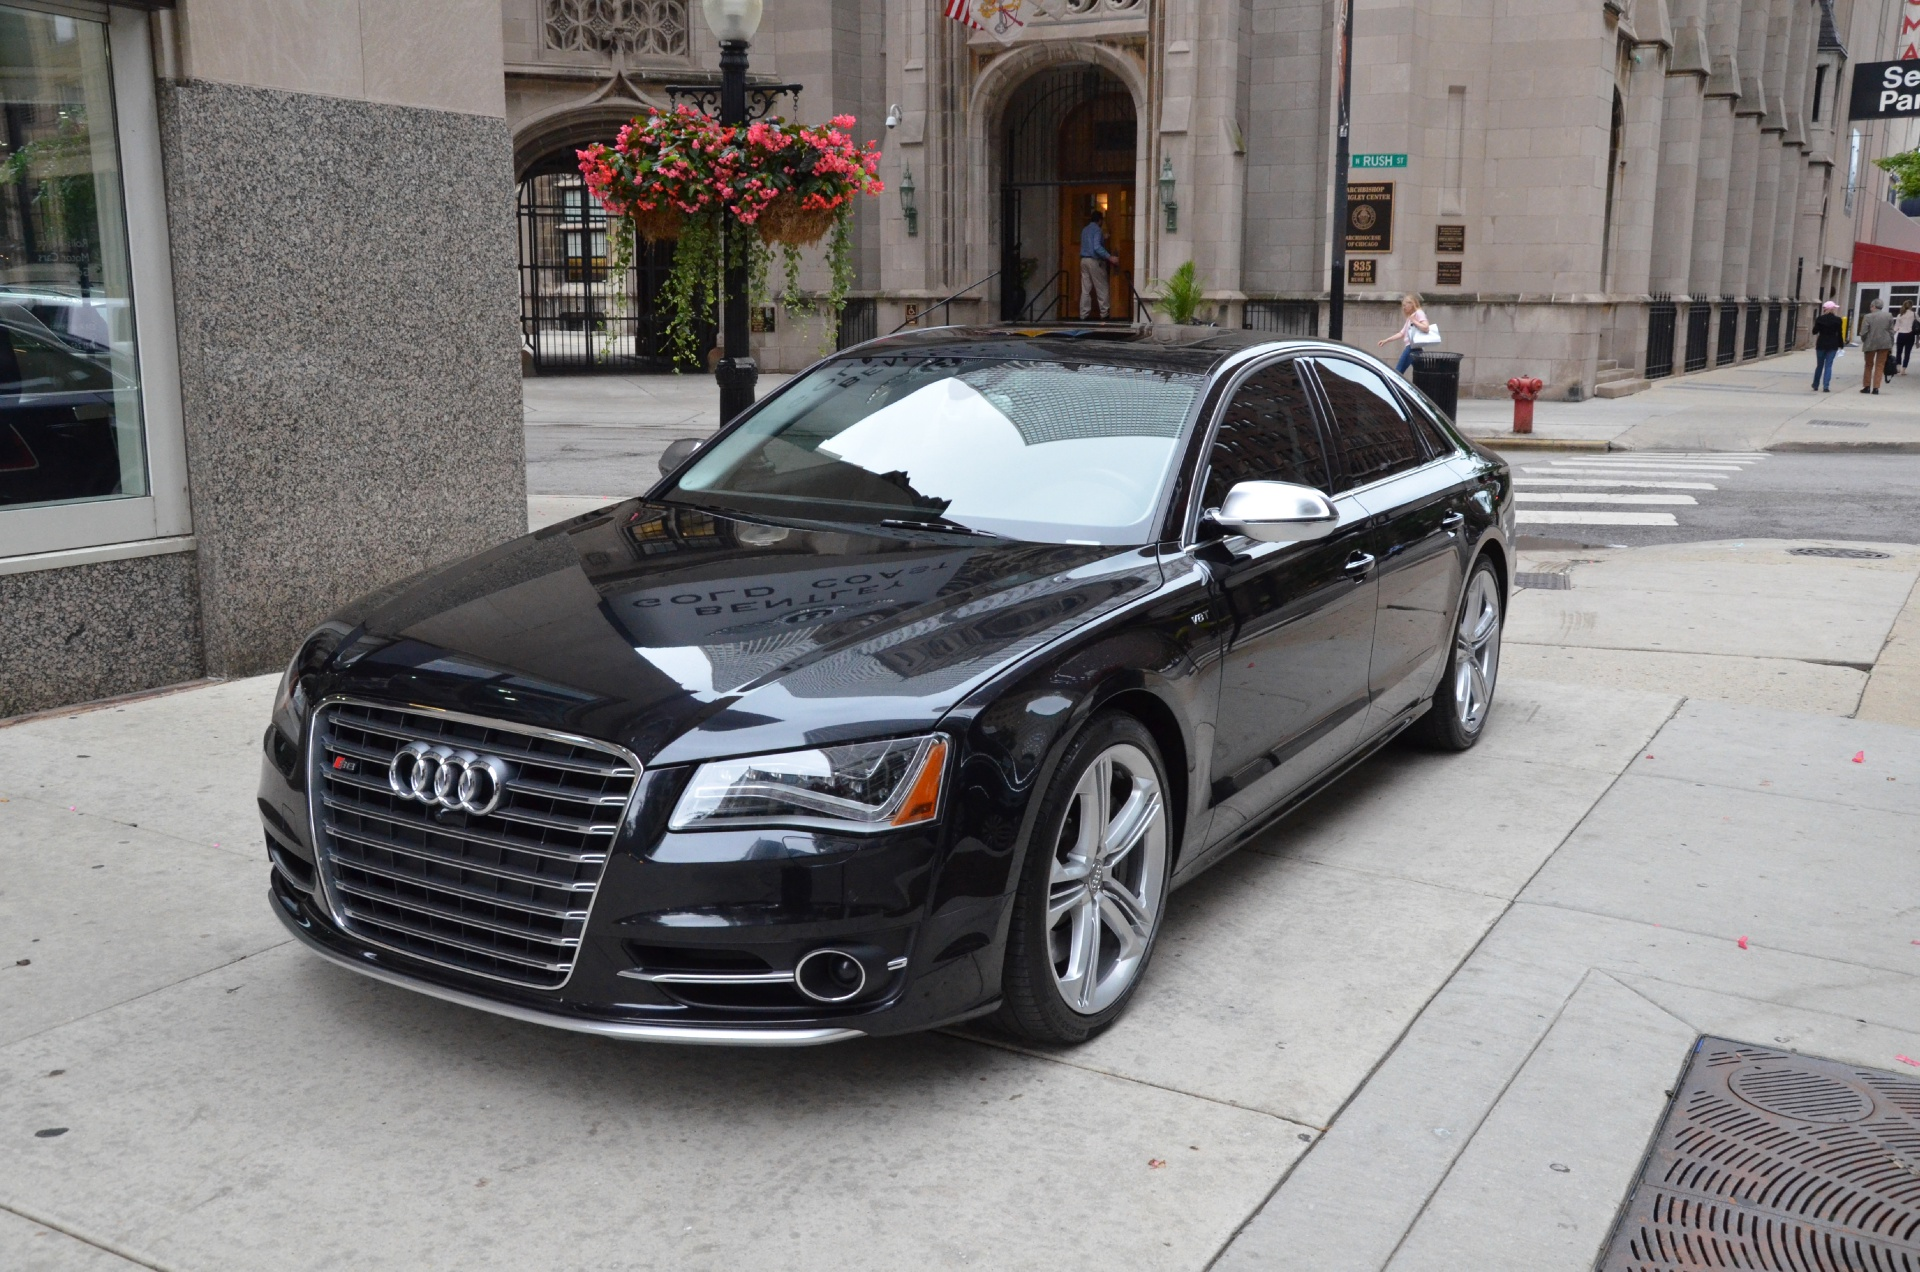 2013 audi s8 4 0t quattro stock r156a for sale near chicago il il audi dealer. Black Bedroom Furniture Sets. Home Design Ideas